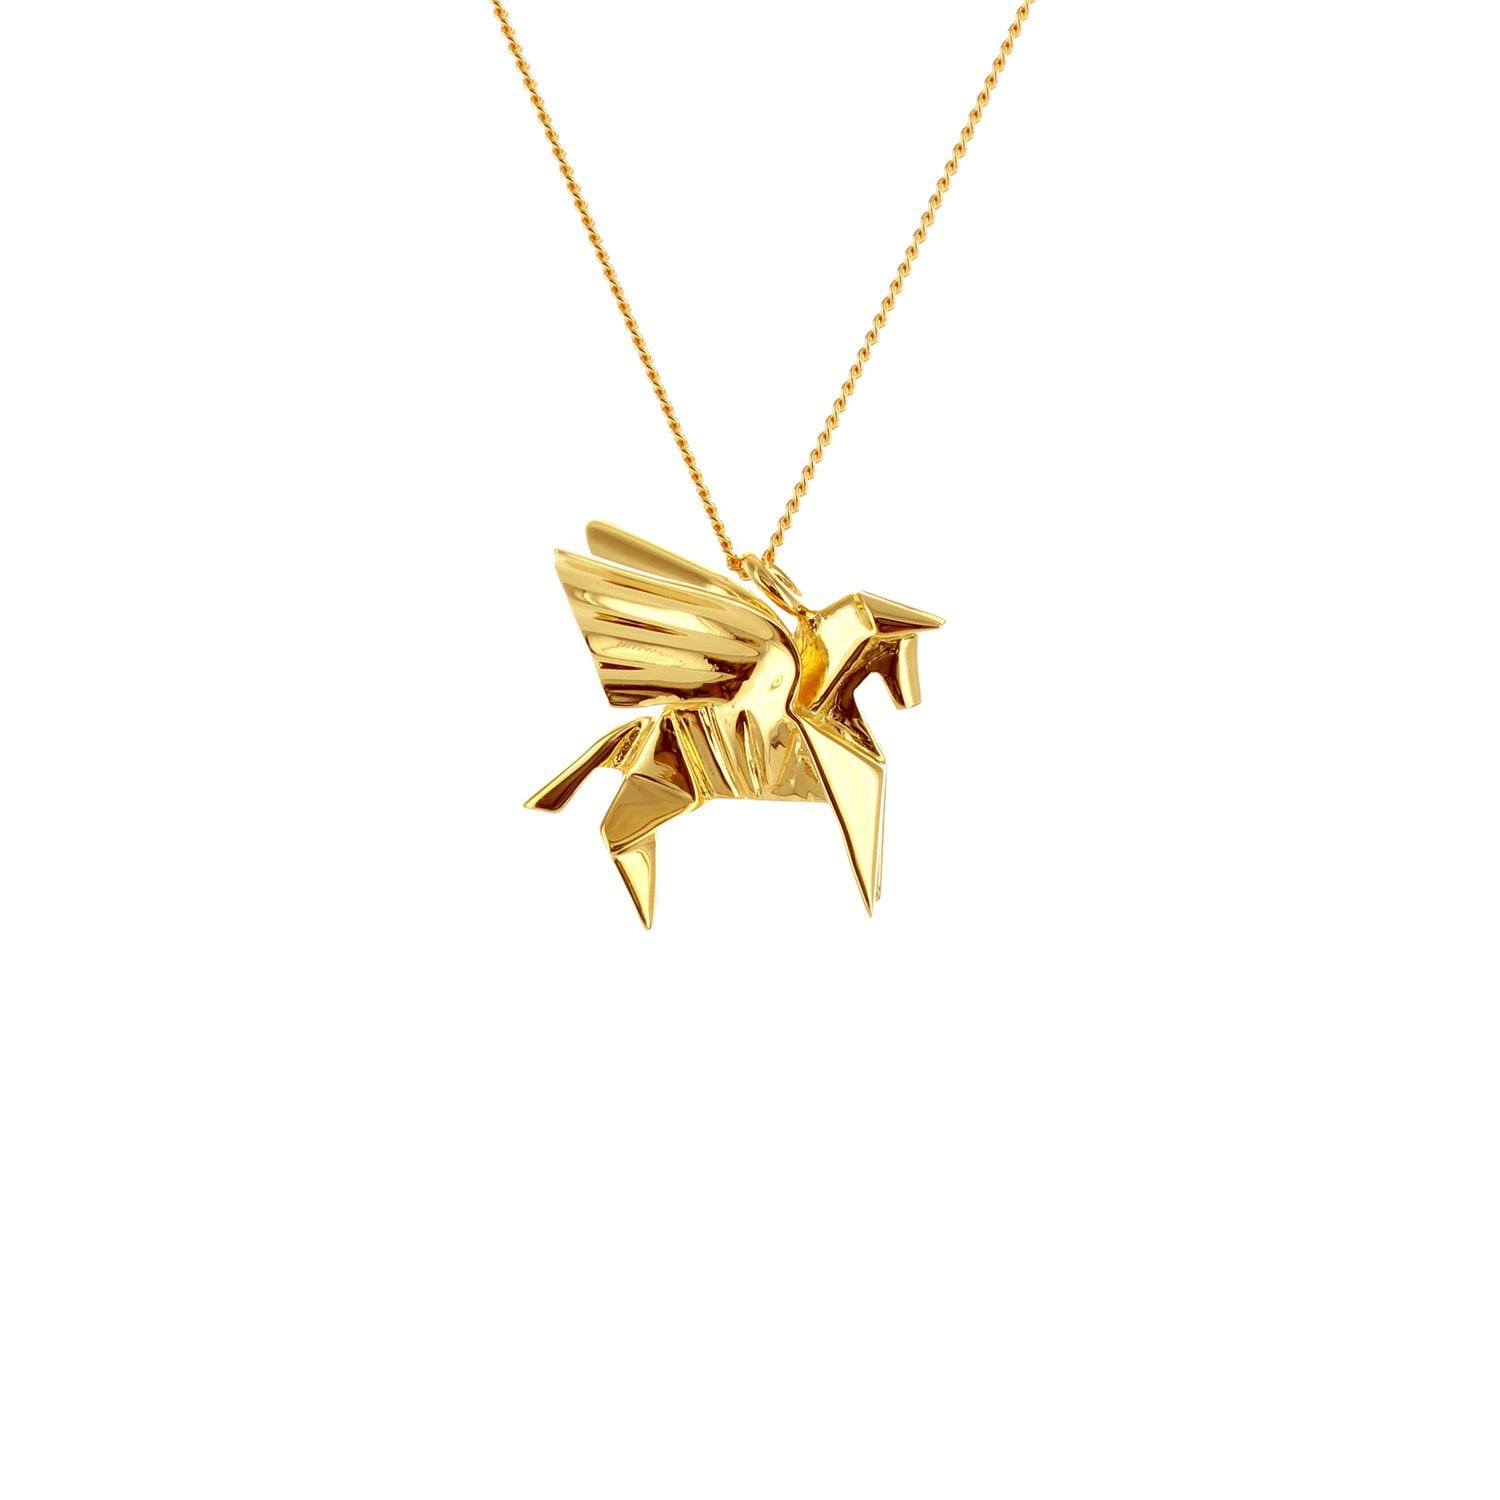 Origami Jewellery Sterling Silver & Gold Mini Lion Origami Necklace R6HUh